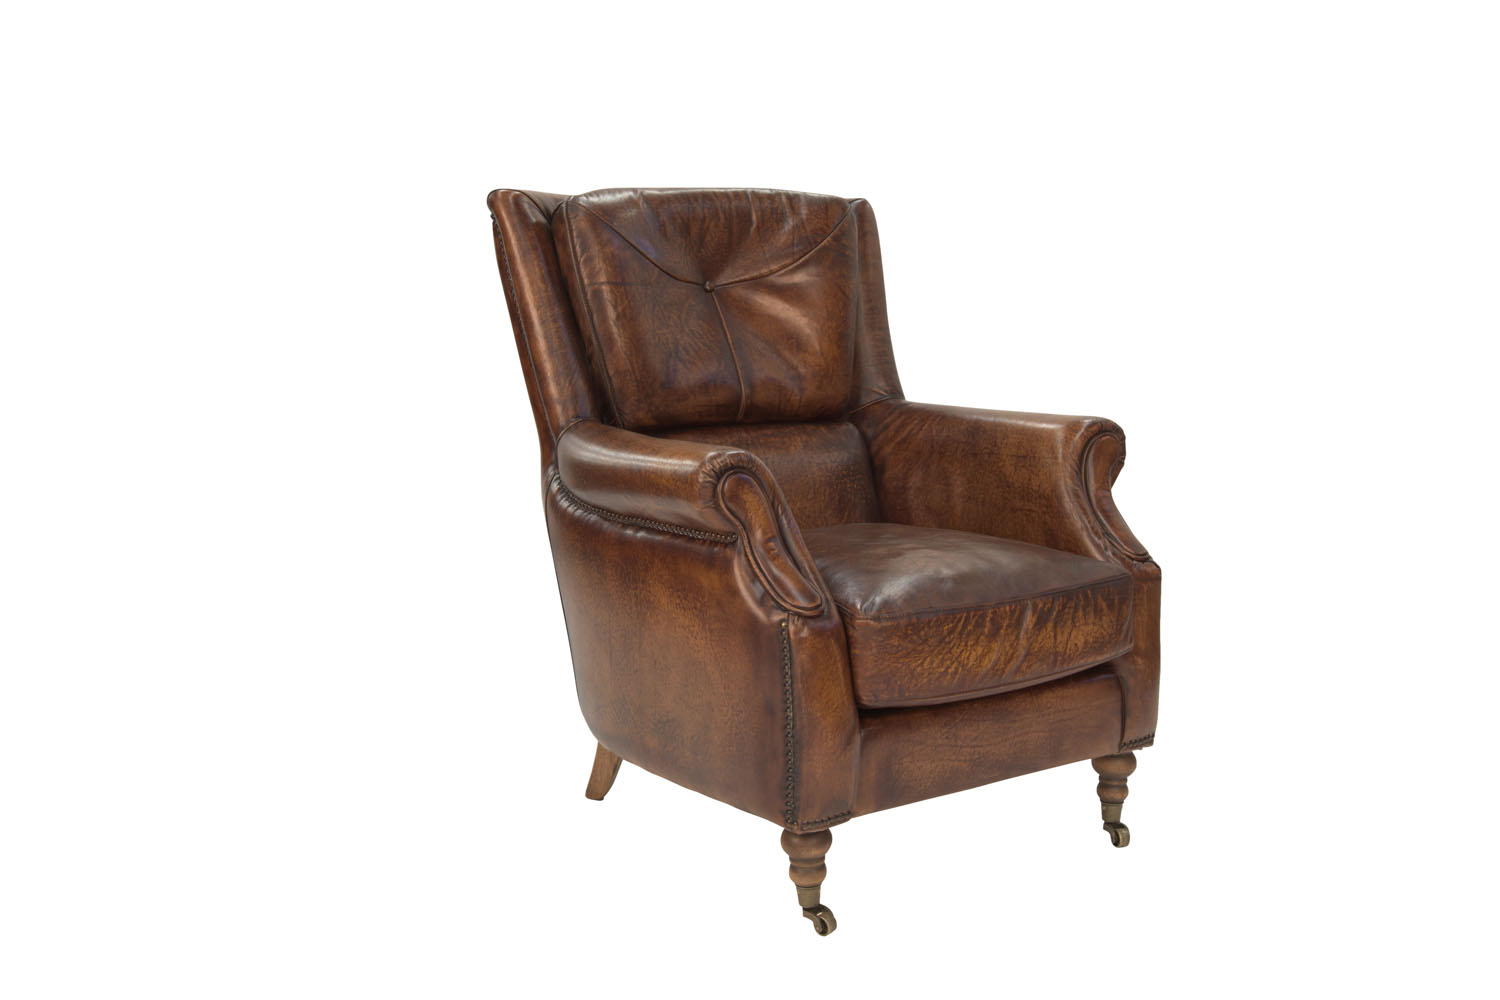 Cambridge wingback chair in aged leather, canalside.com.au